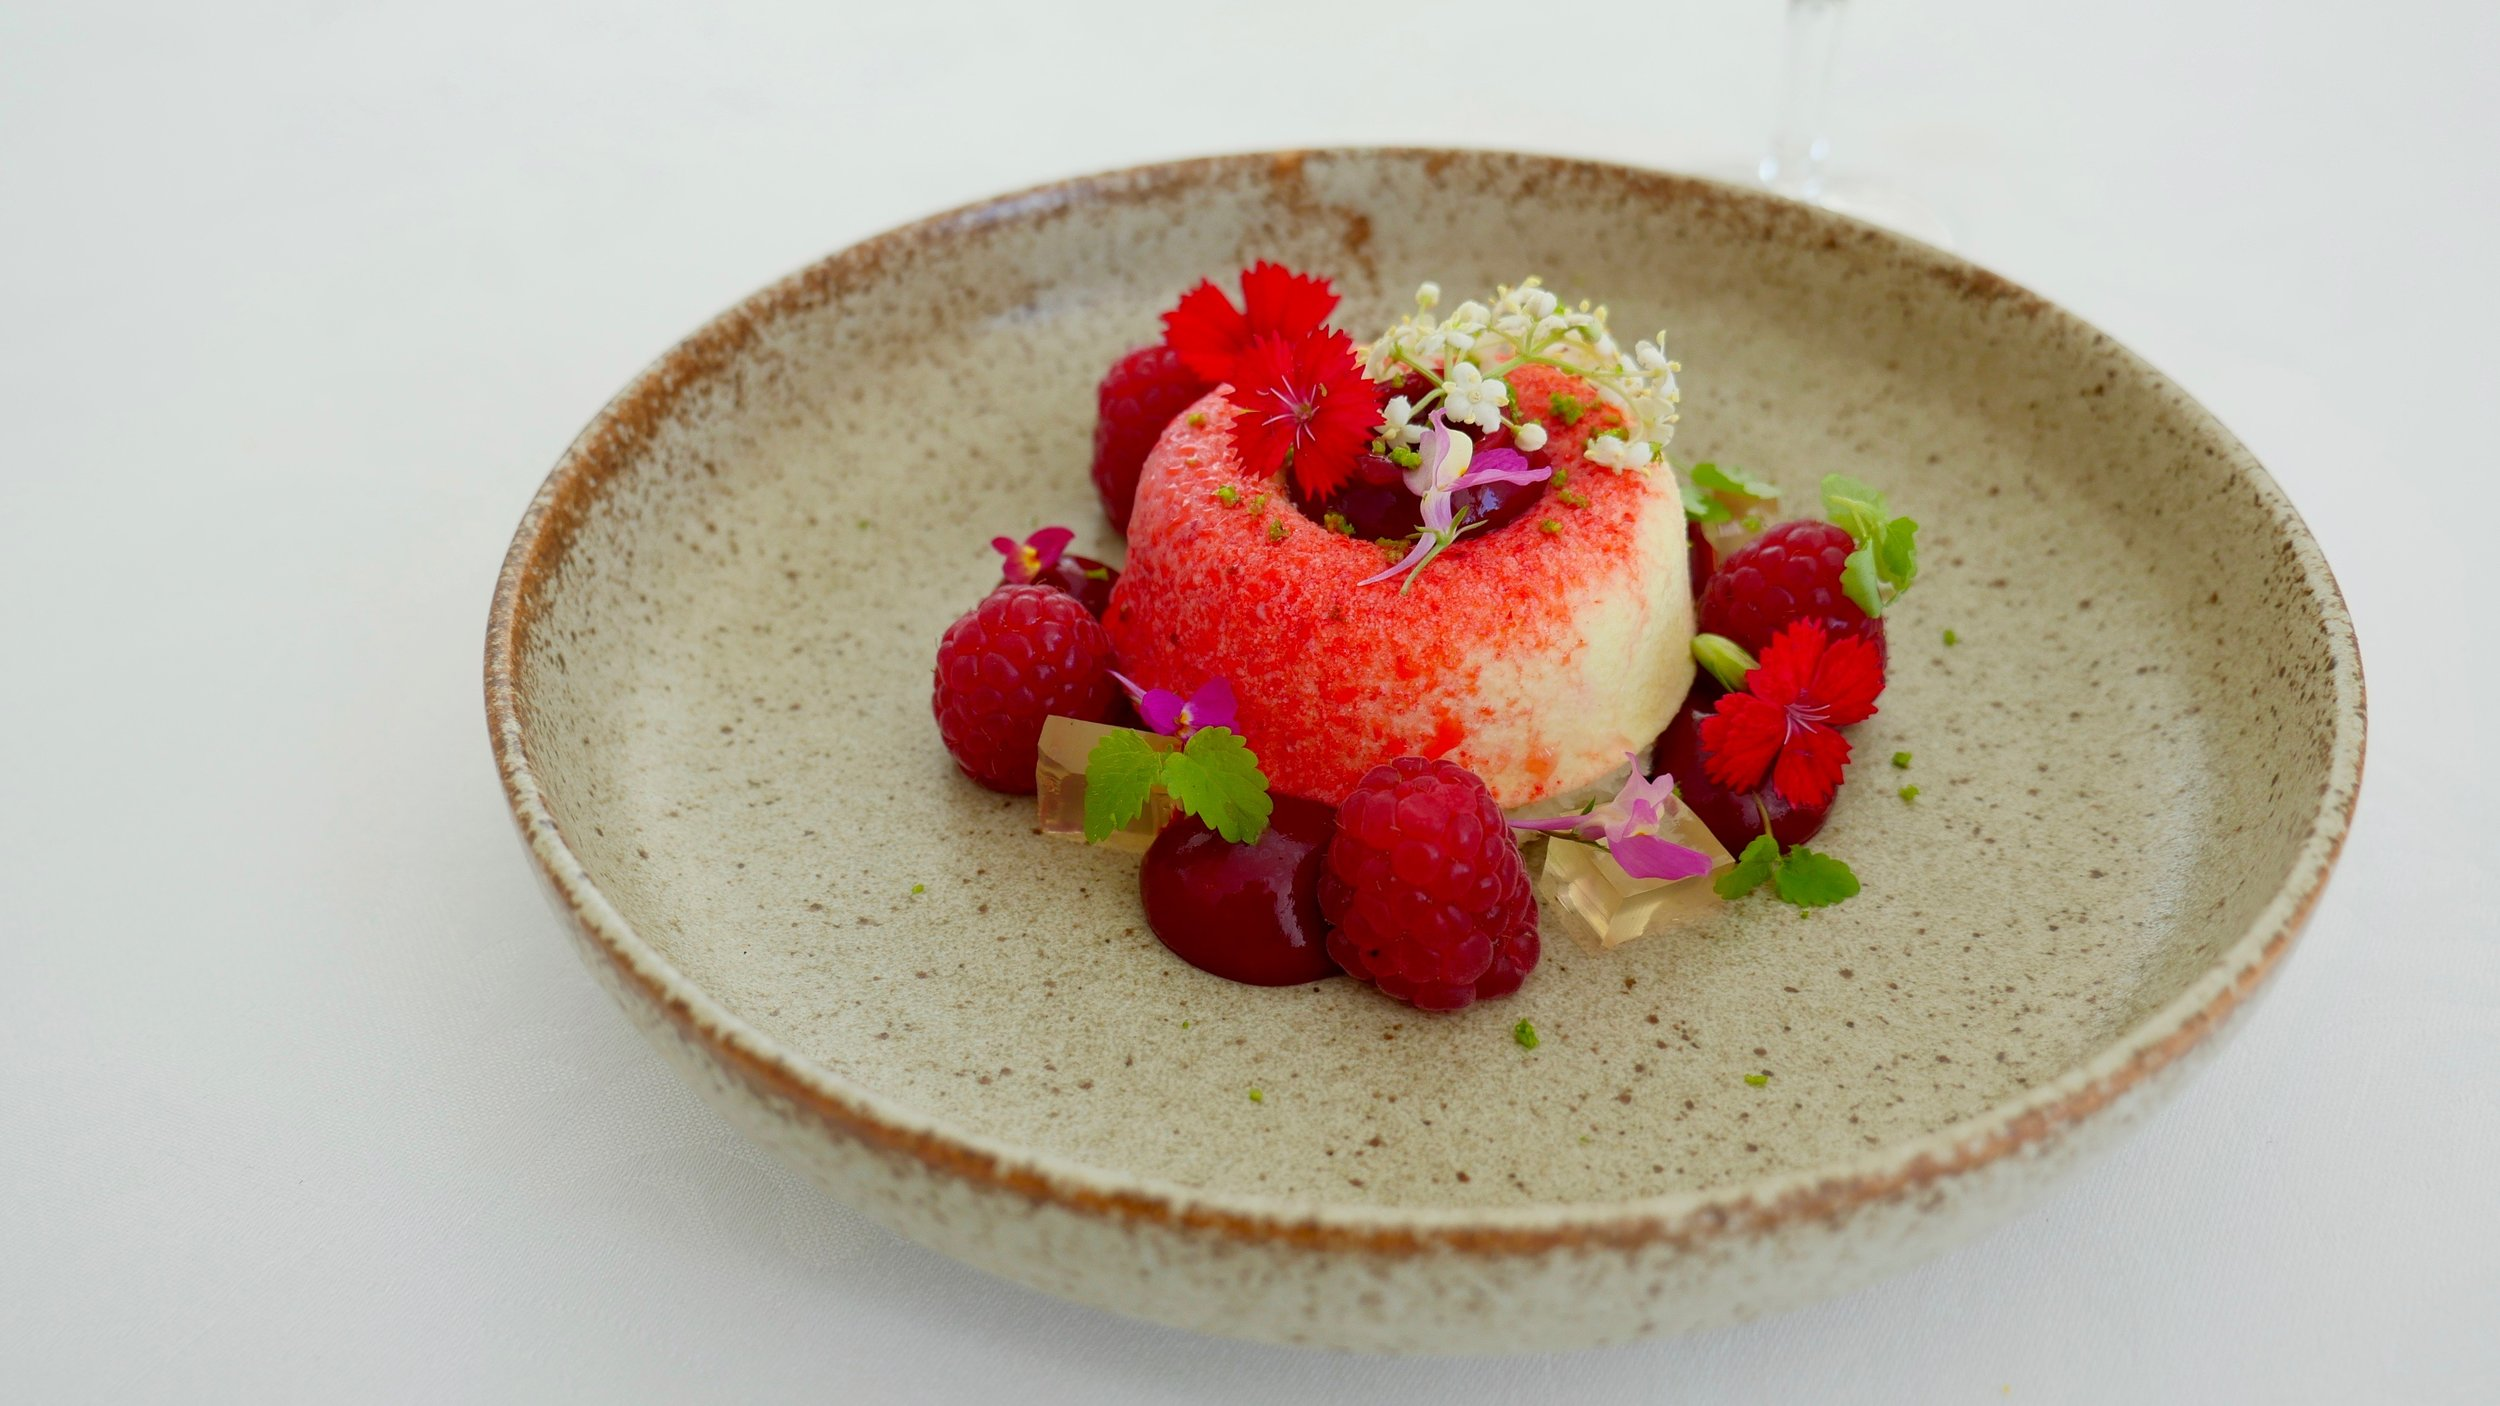 COCONUT & WHITE CHOCOLATE SEMIFREDDO, RASPBERRIES, ELDERFLOWER JELLY, KAFFIR LIME